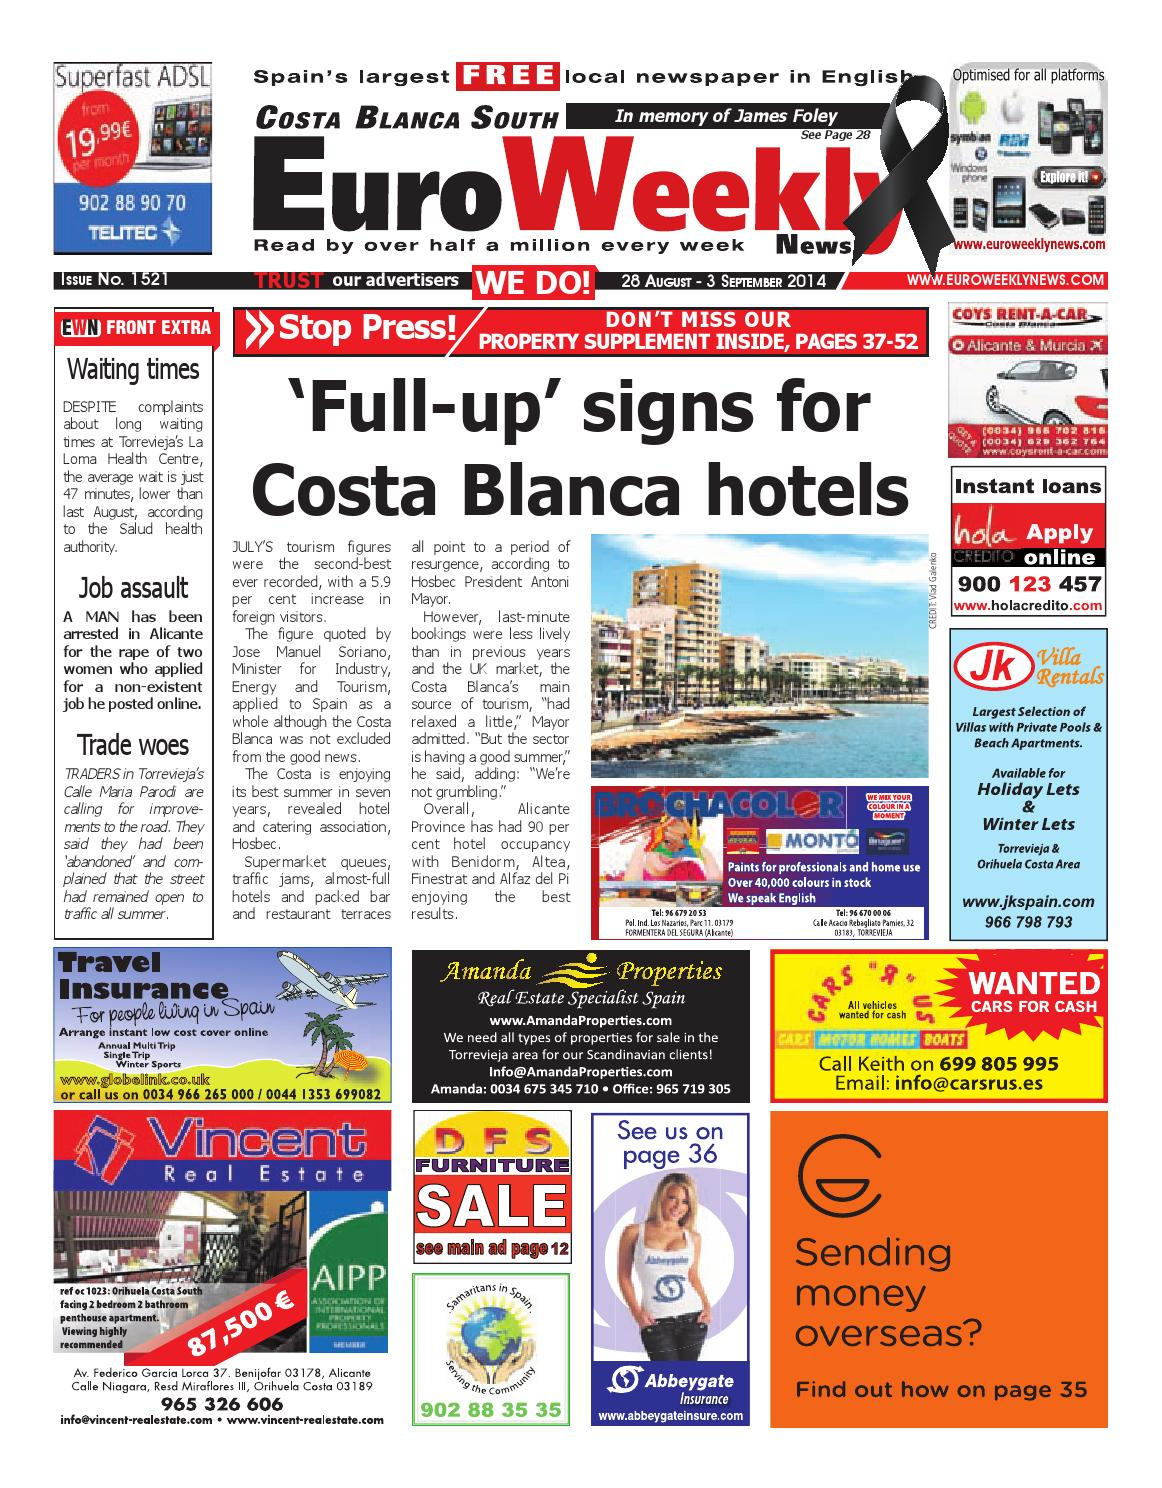 Cash Pool Rüsselsheim Euro Weekly News Costa Blanca South 28 August 3 September 2014